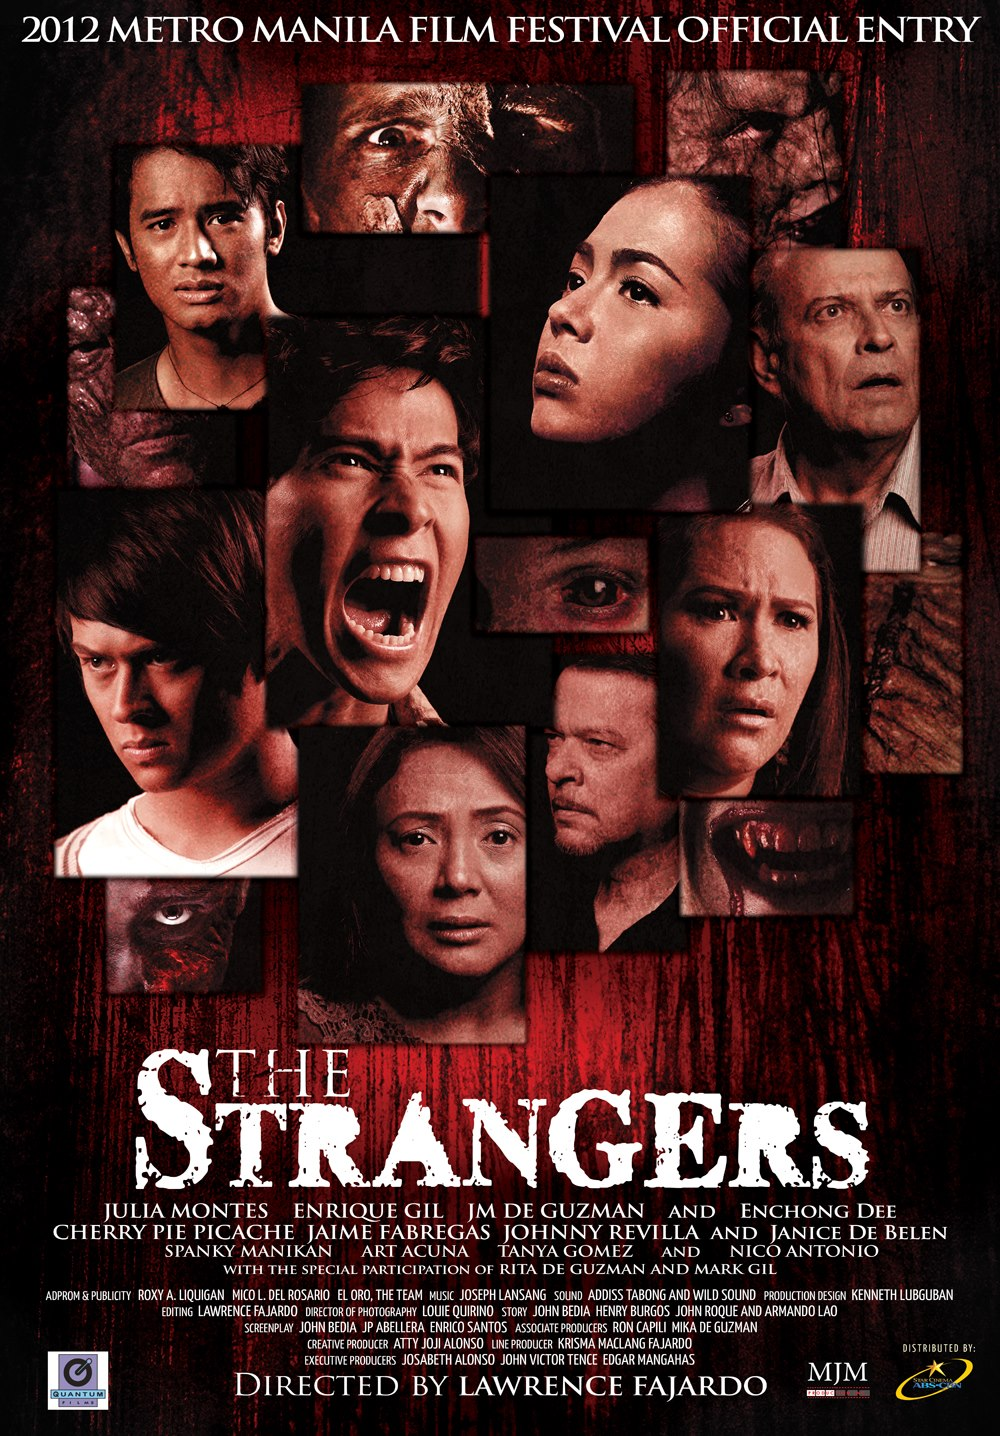 the strangers movie review mmff 2012 wibbly wobbly